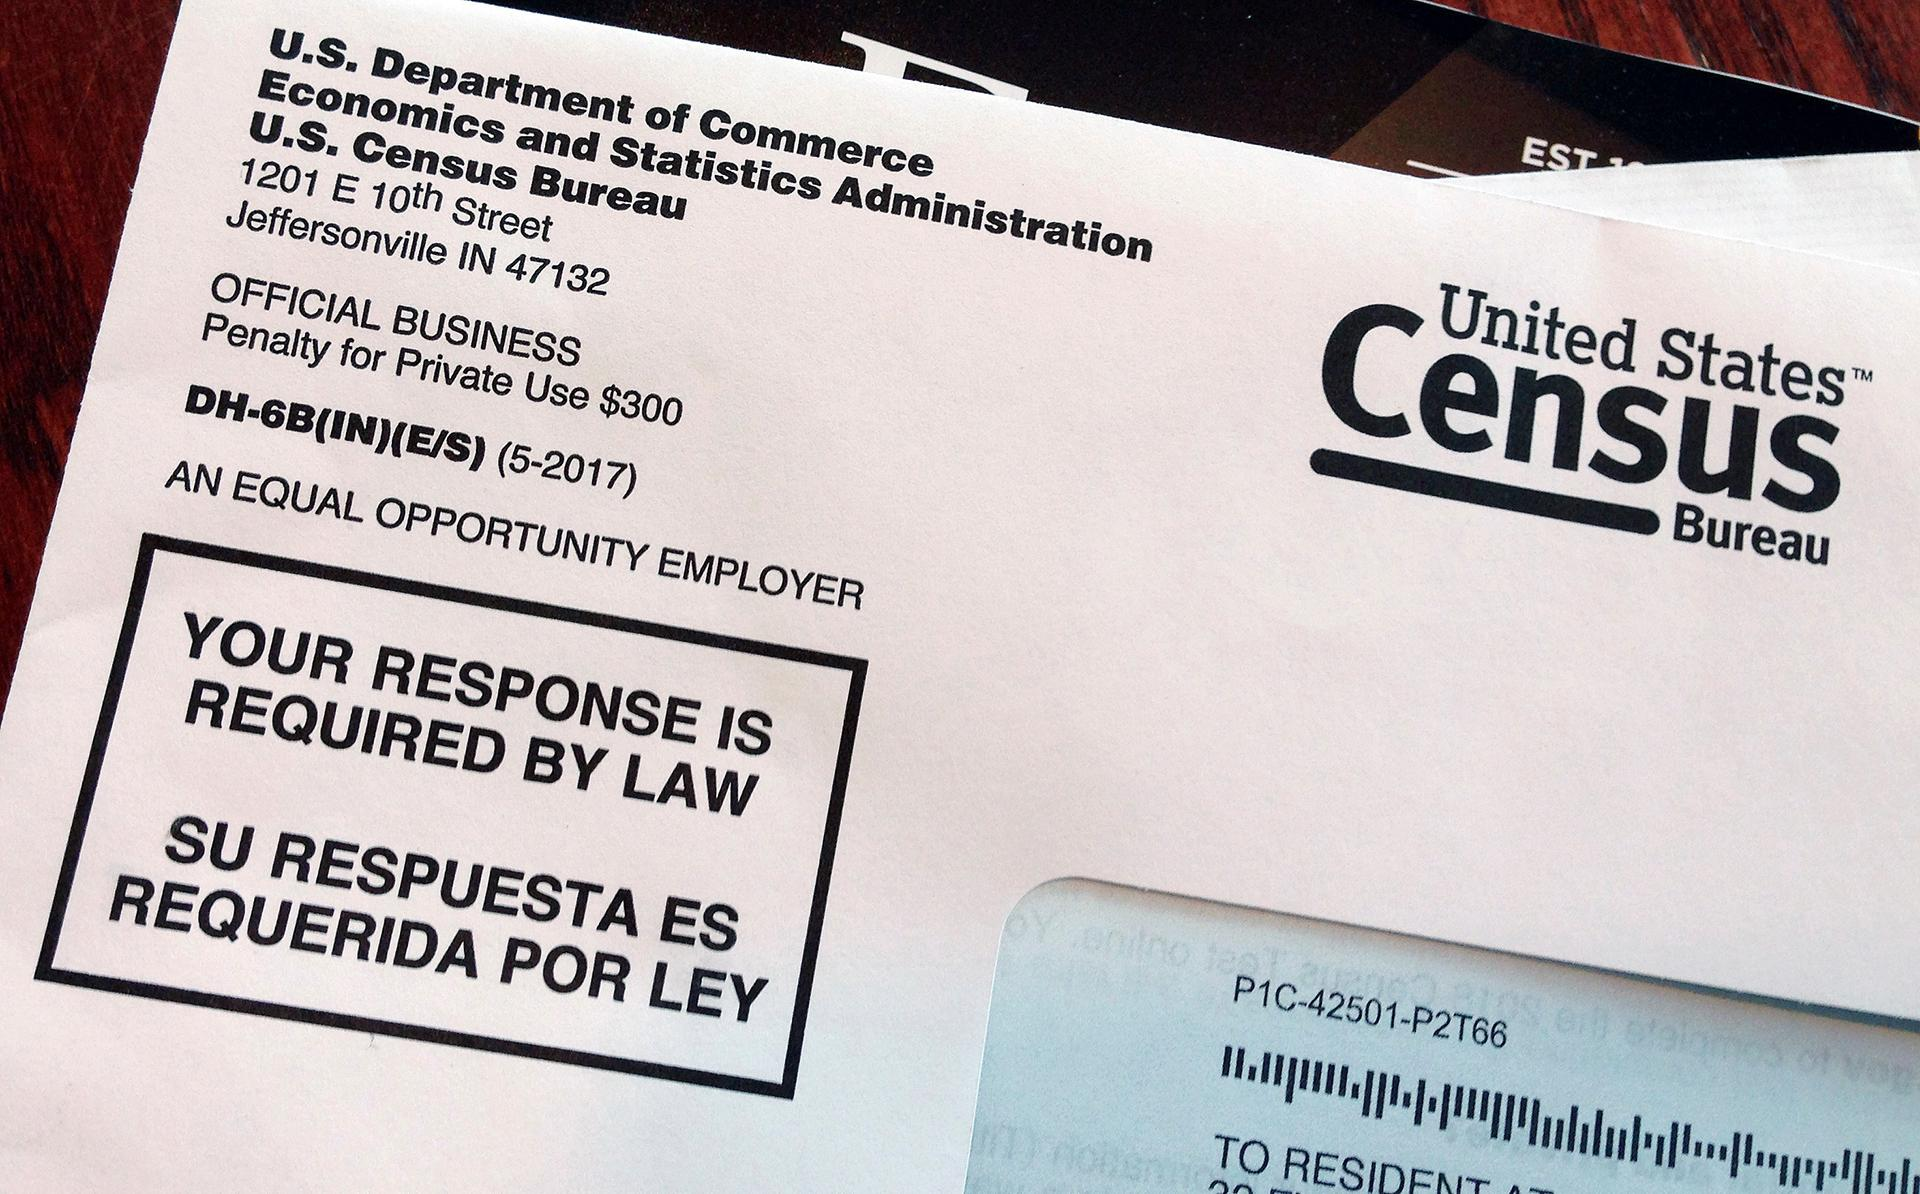 This March 23, 2018, file photo shows an envelope containing a 2018 census letter mailed to a U.S. resident as part of the nation's only test run of the 2020 Census. Legal wrangling has surrounded the U.S. census count for decades, culminating in this year's fight over adding a citizenship question. (AP Photo / Michelle R. Smith, File)